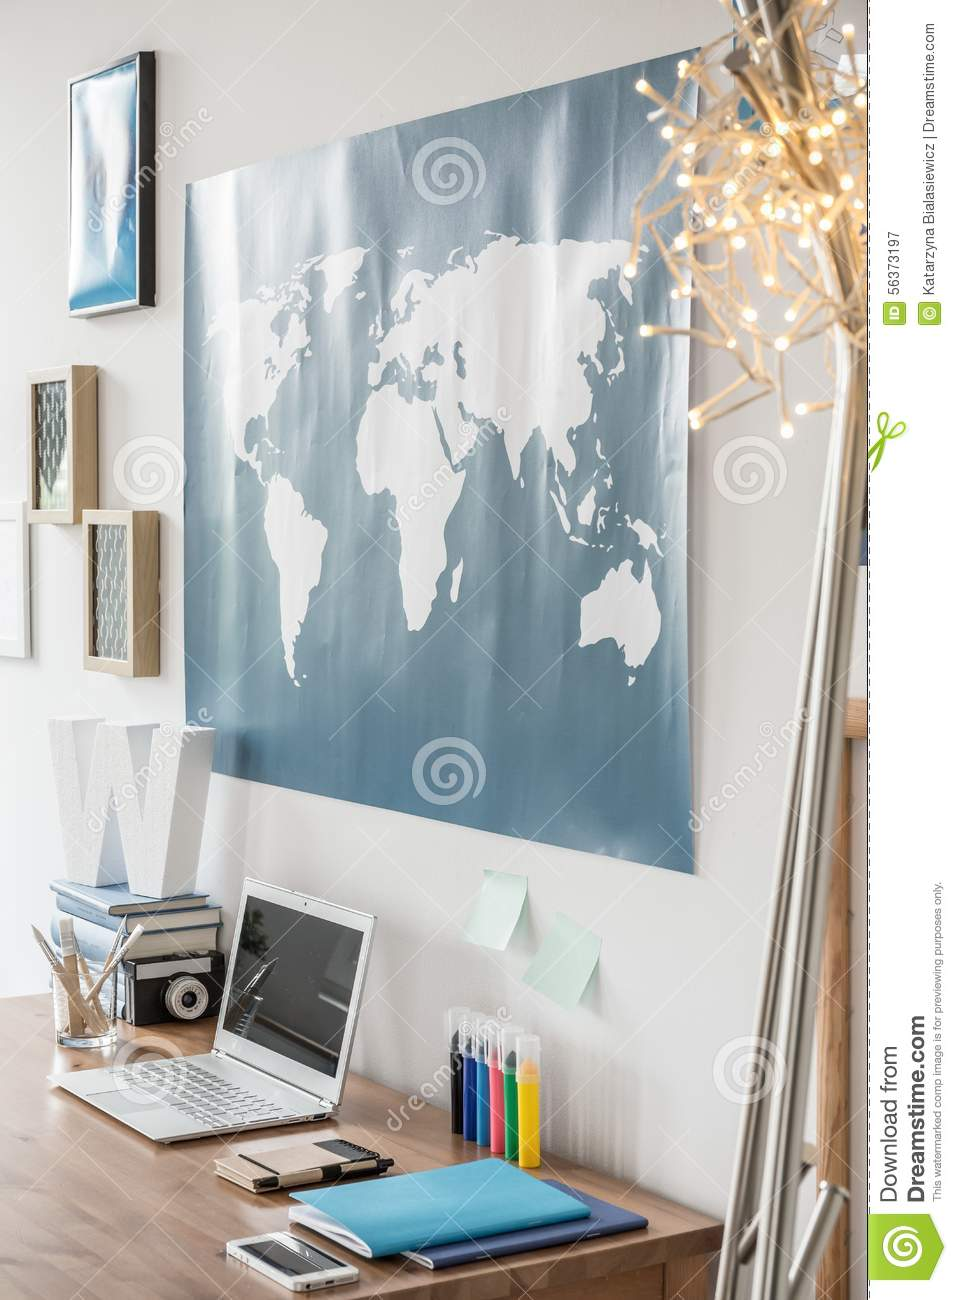 Workspace with world map stock image image of house 56373197 workspace with world map gumiabroncs Image collections